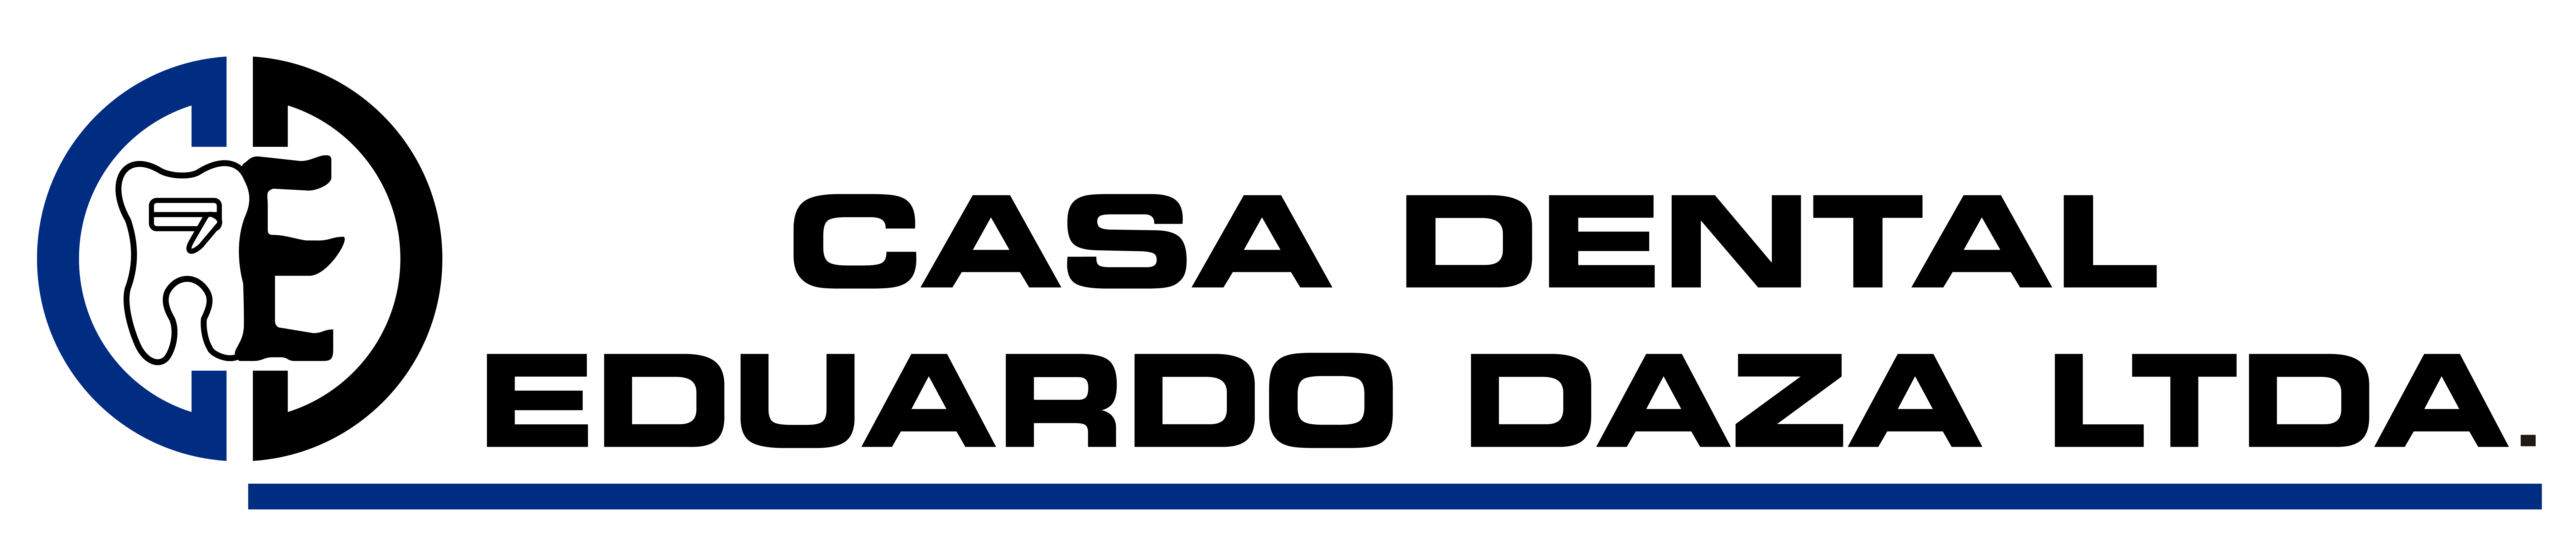 Casa Dental Eduardo Daza